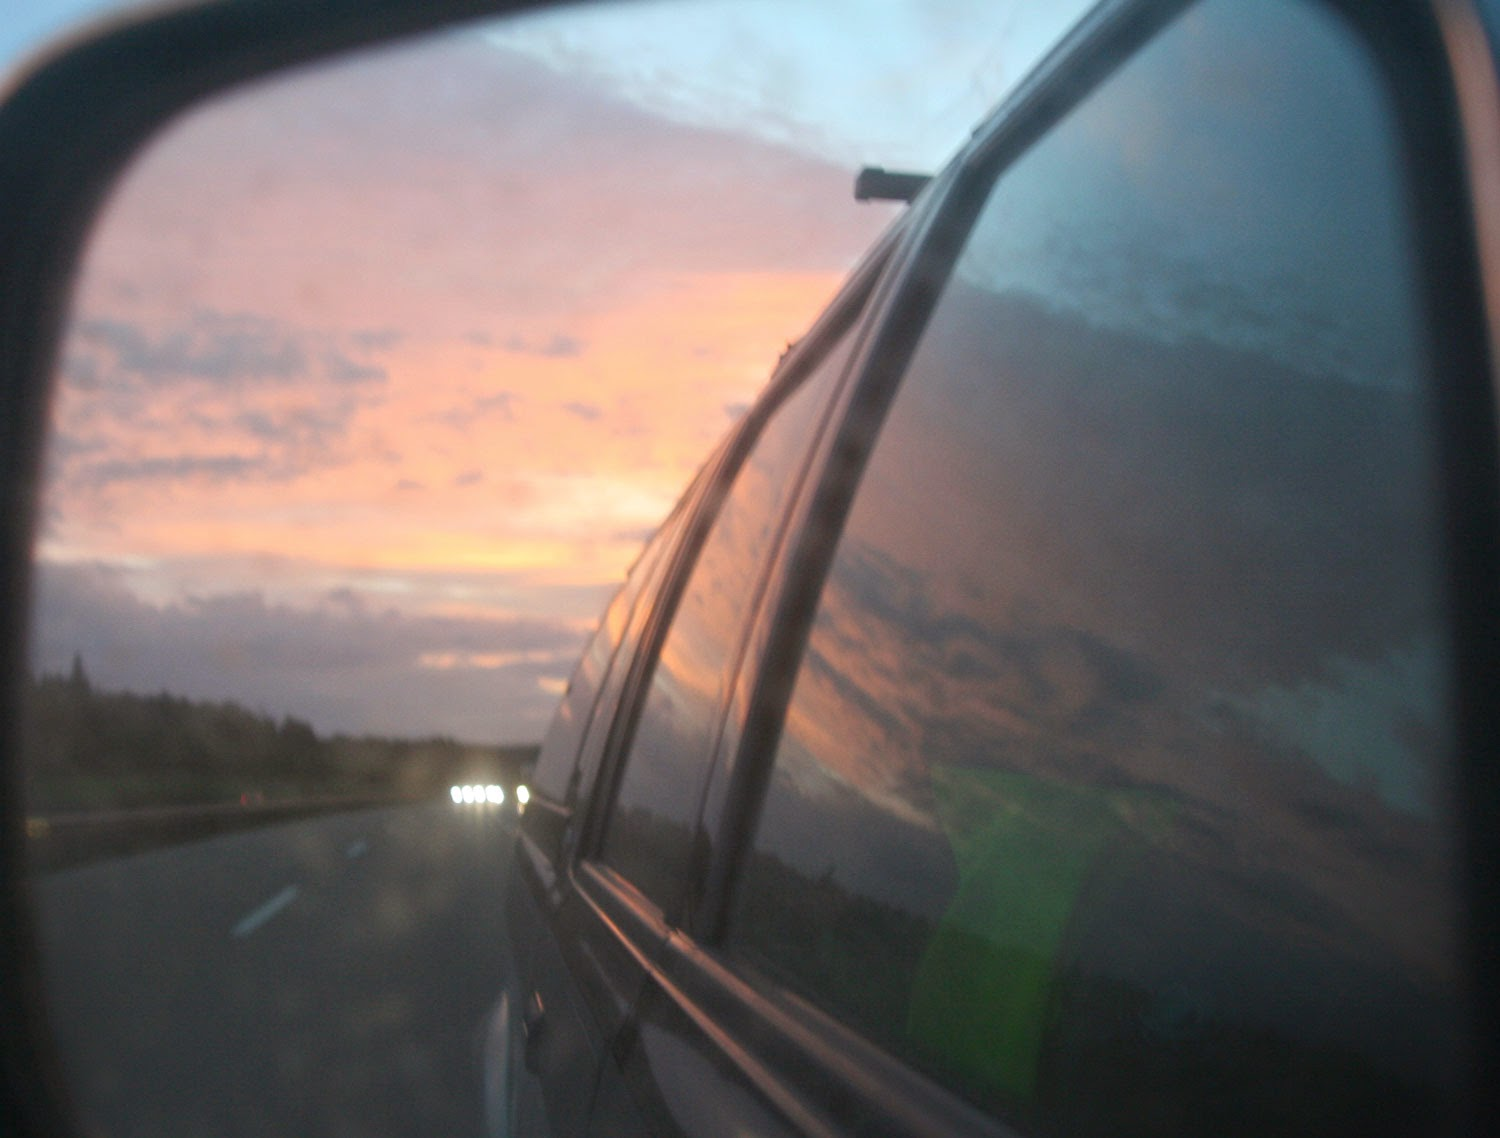 The sunrise as seen in Thomas' wing mirror